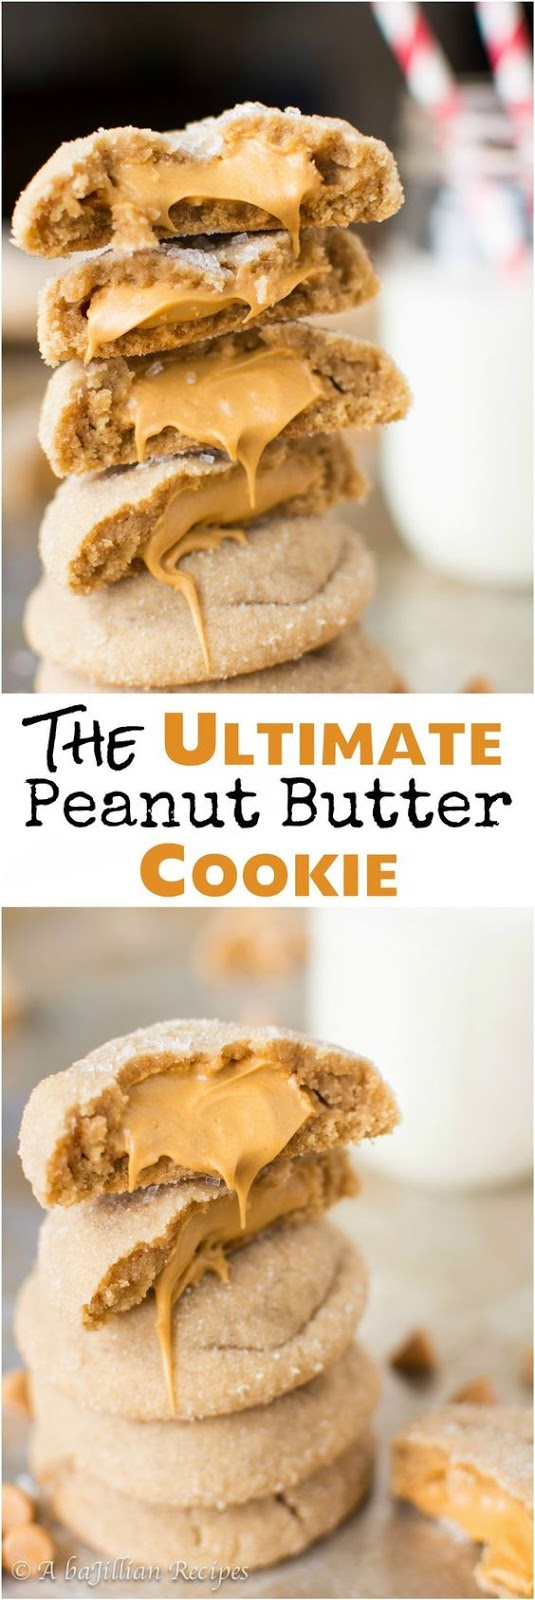 THE ULTIMATE PEANUT BUTTER COOKIE